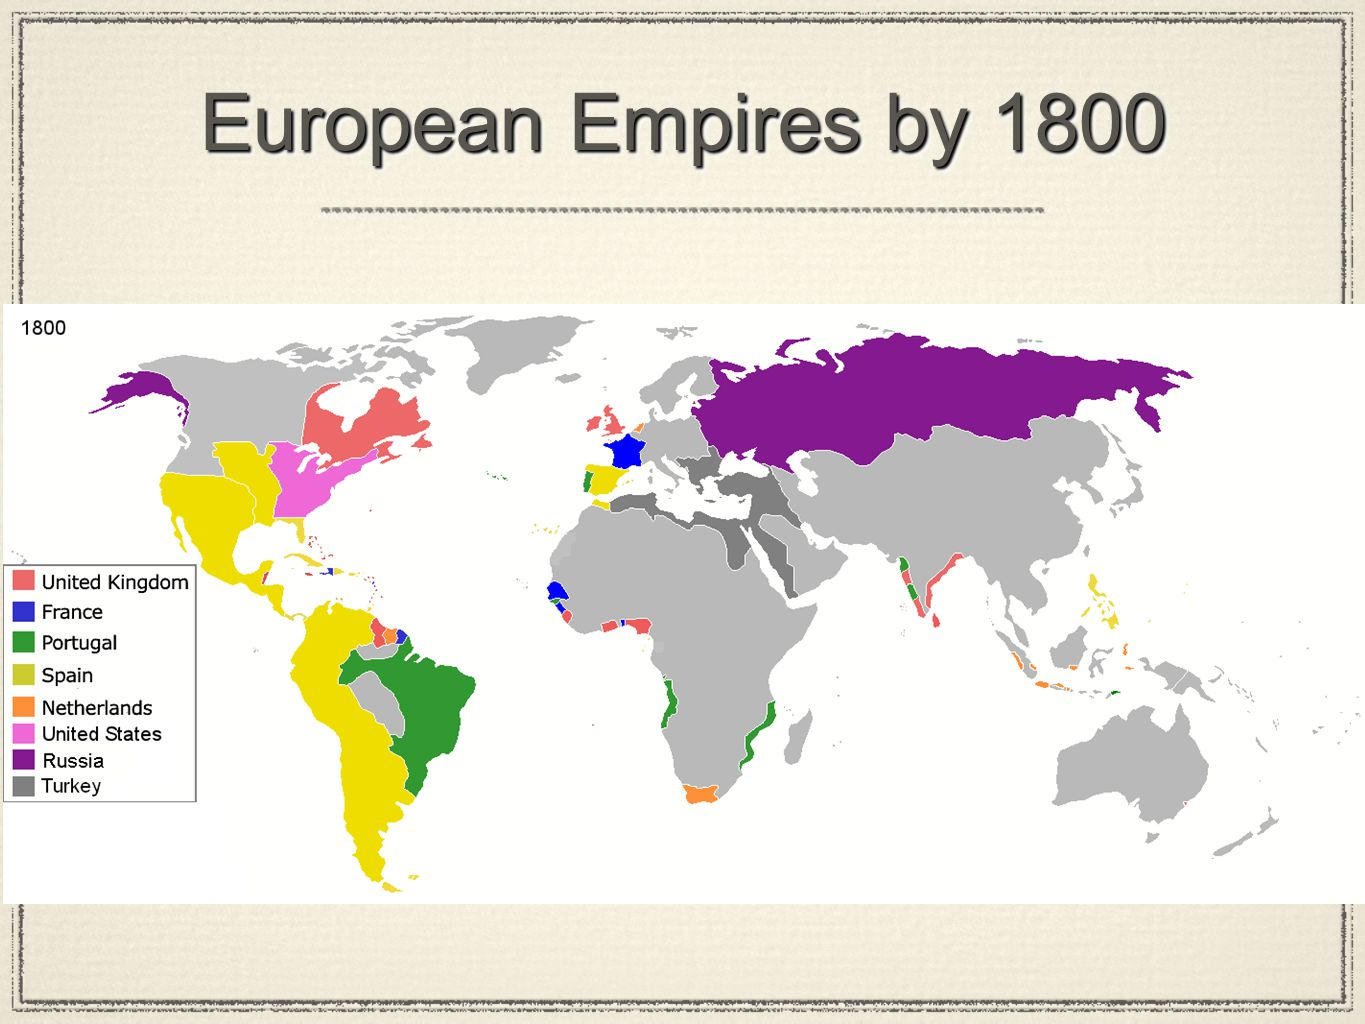 European Empires by 1800